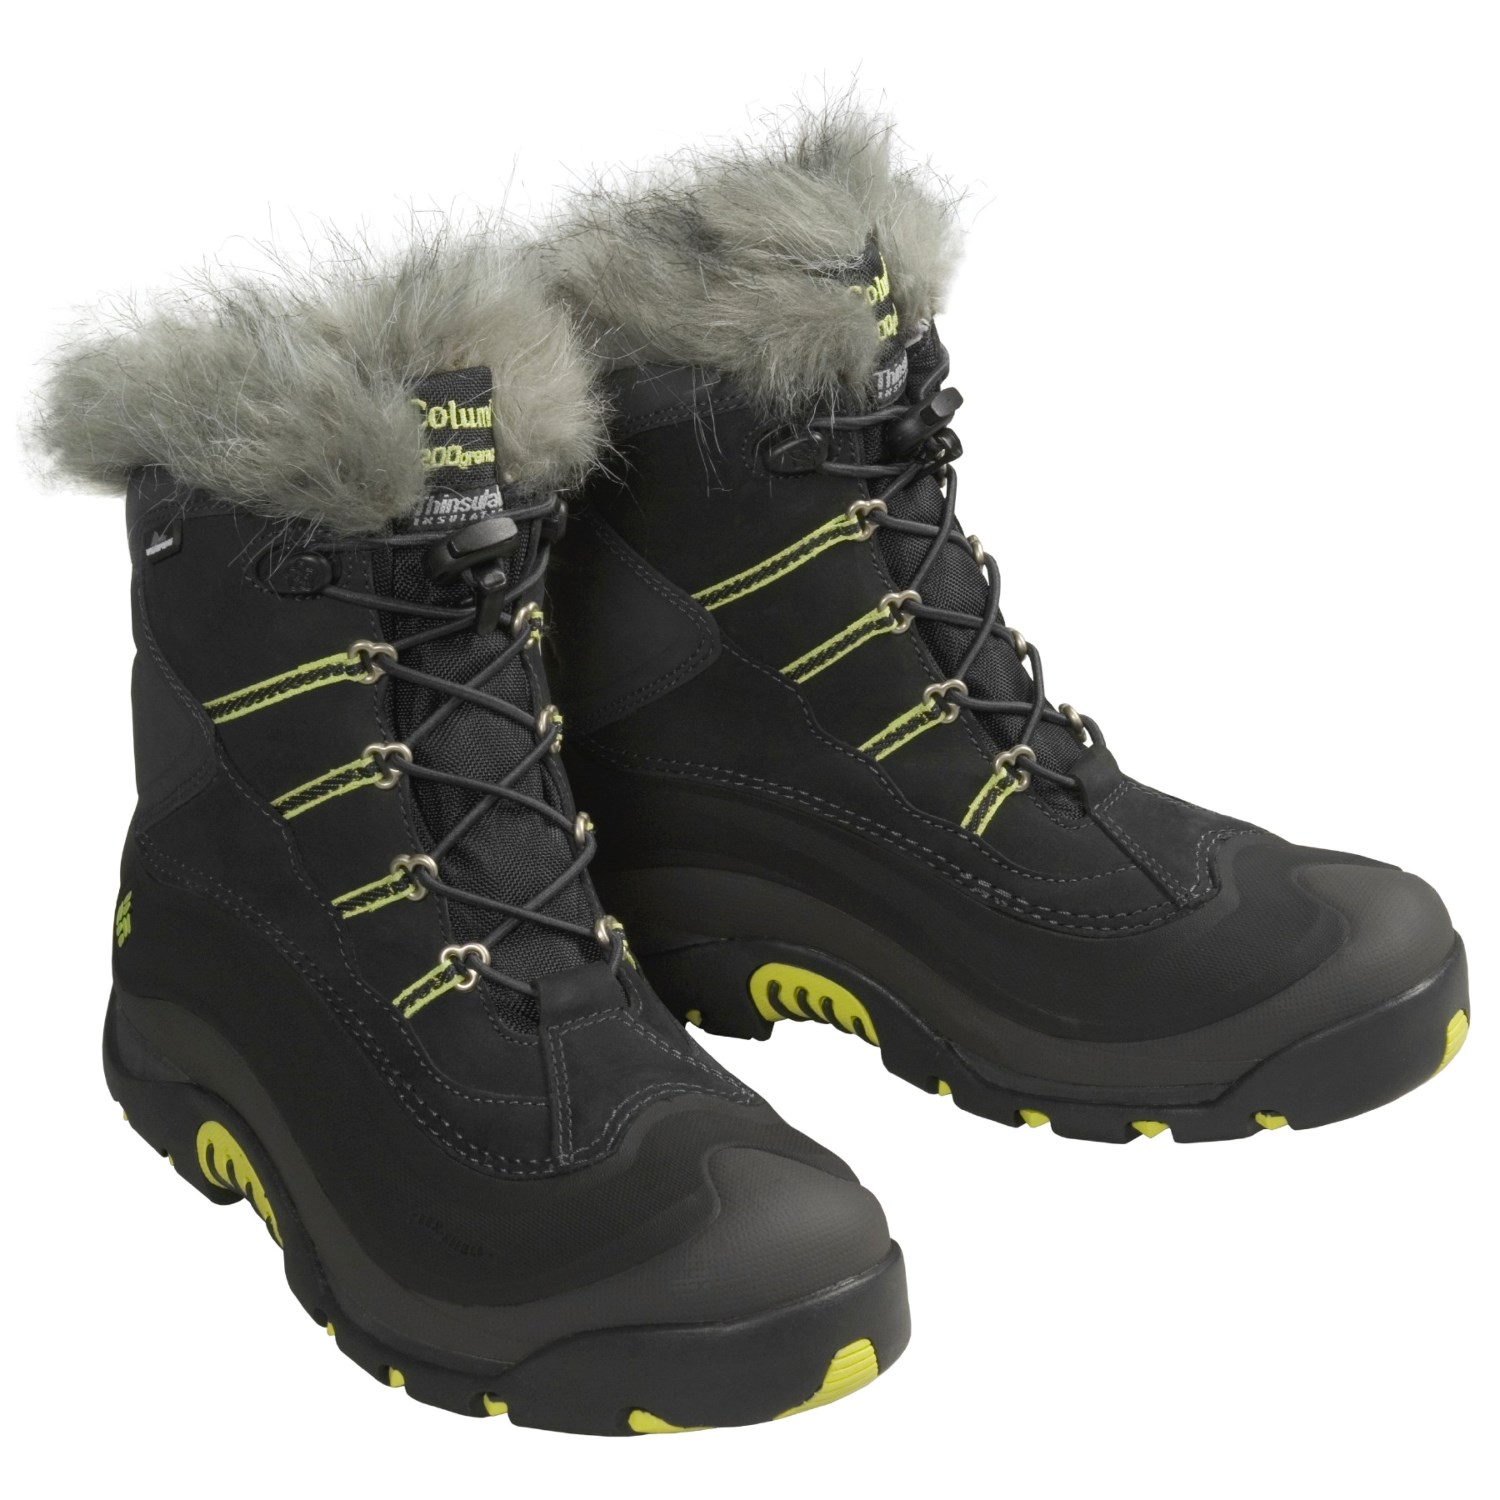 Creative COLUMBIA WOMENS 7.5 9 BUGABOOT PLUS II OMNI HEAT SNOW/WINETR BOOTS WATERPROOF | EBay